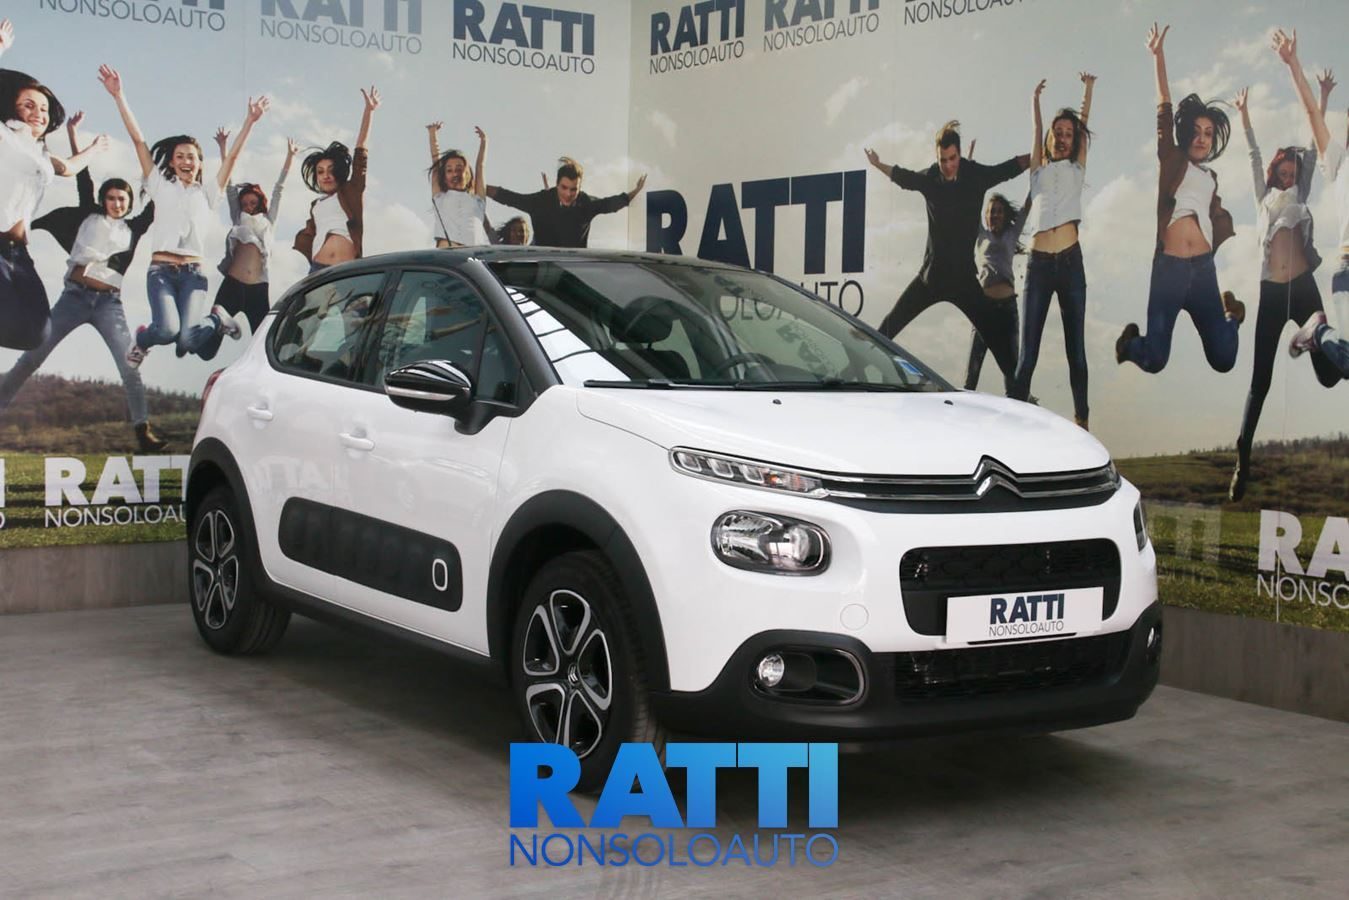 CITROEN C3 PureTech 1.2 82CV S&S Shine + Active Safety Brake Bianco  cambio Manuale Benzina Km 0 berlina due volumi 5 porte 5 posti EURO 6